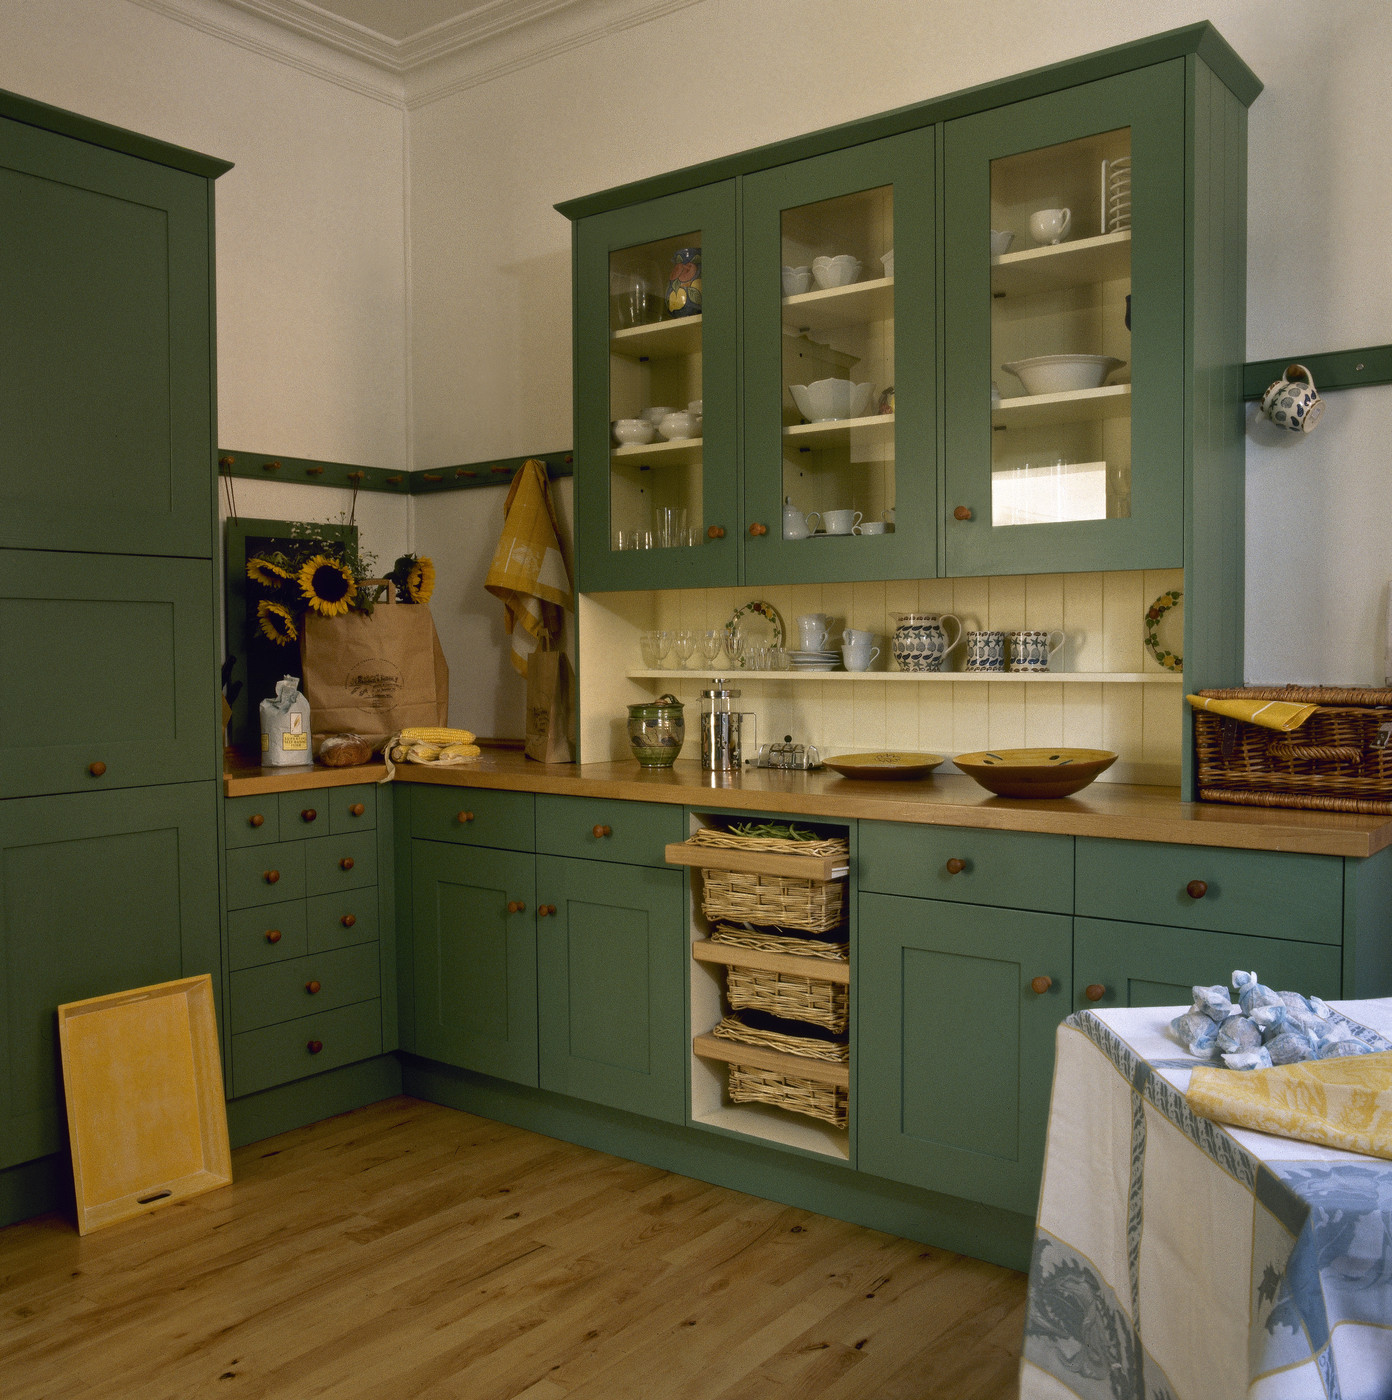 Show Kitchen Paint Colores